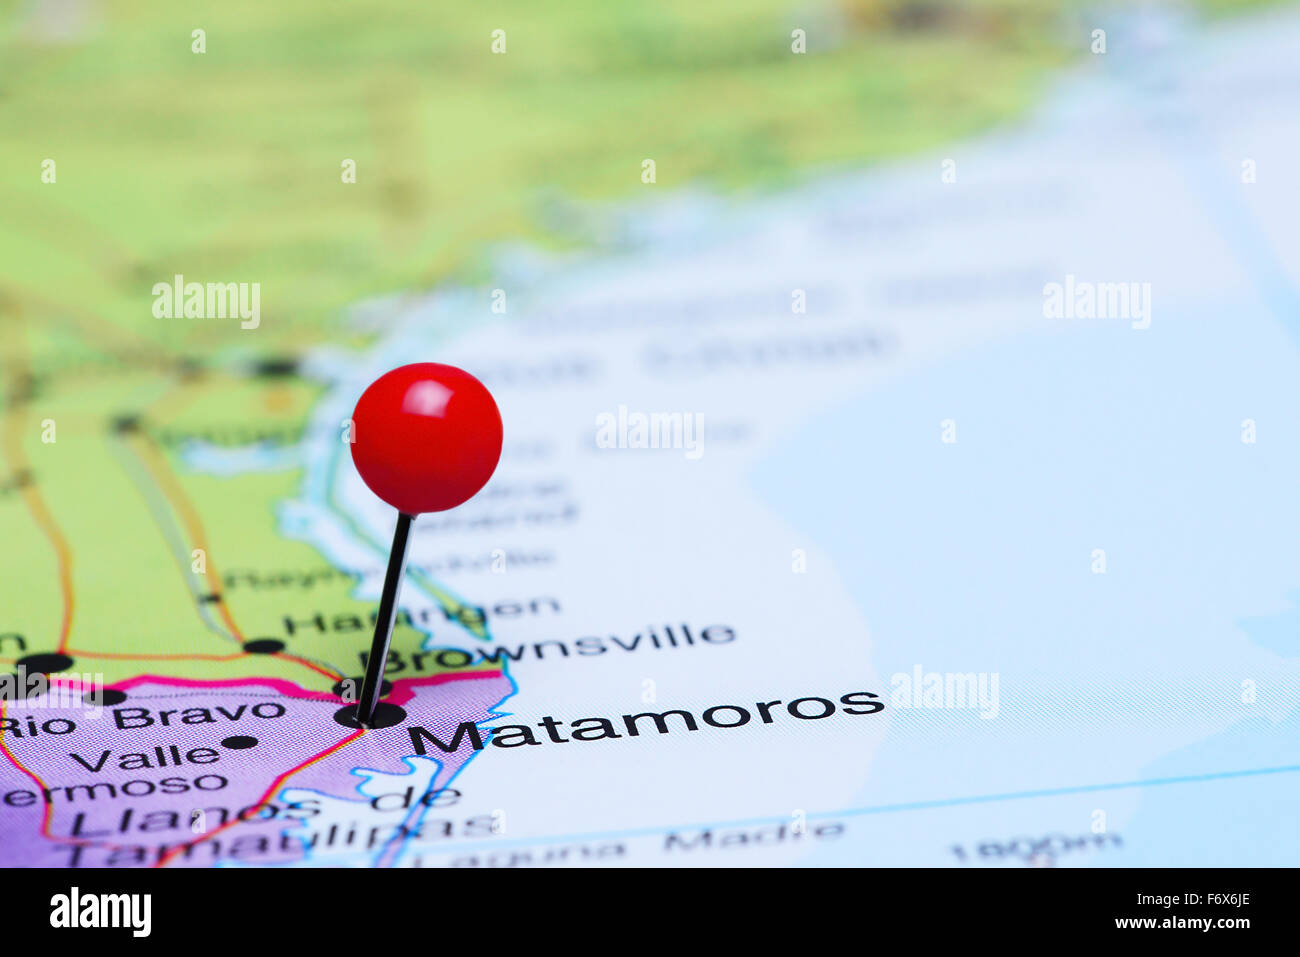 Matamoros pinned on a map of Mexico Stock Photo: 90315750 ...